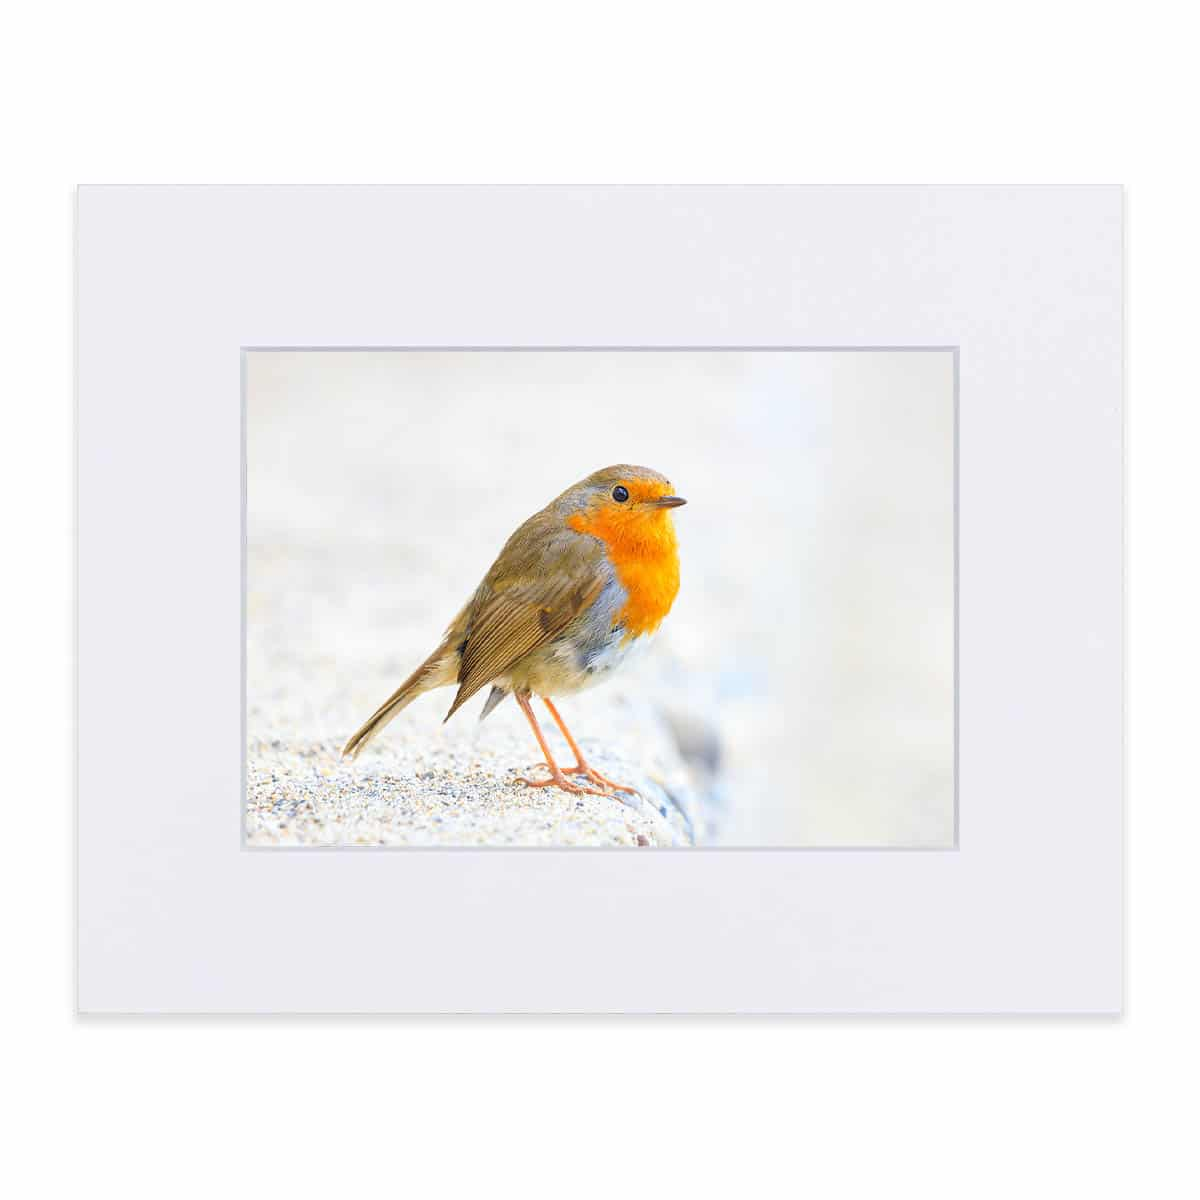 Mounted print of a Robin 8 x 10 inches